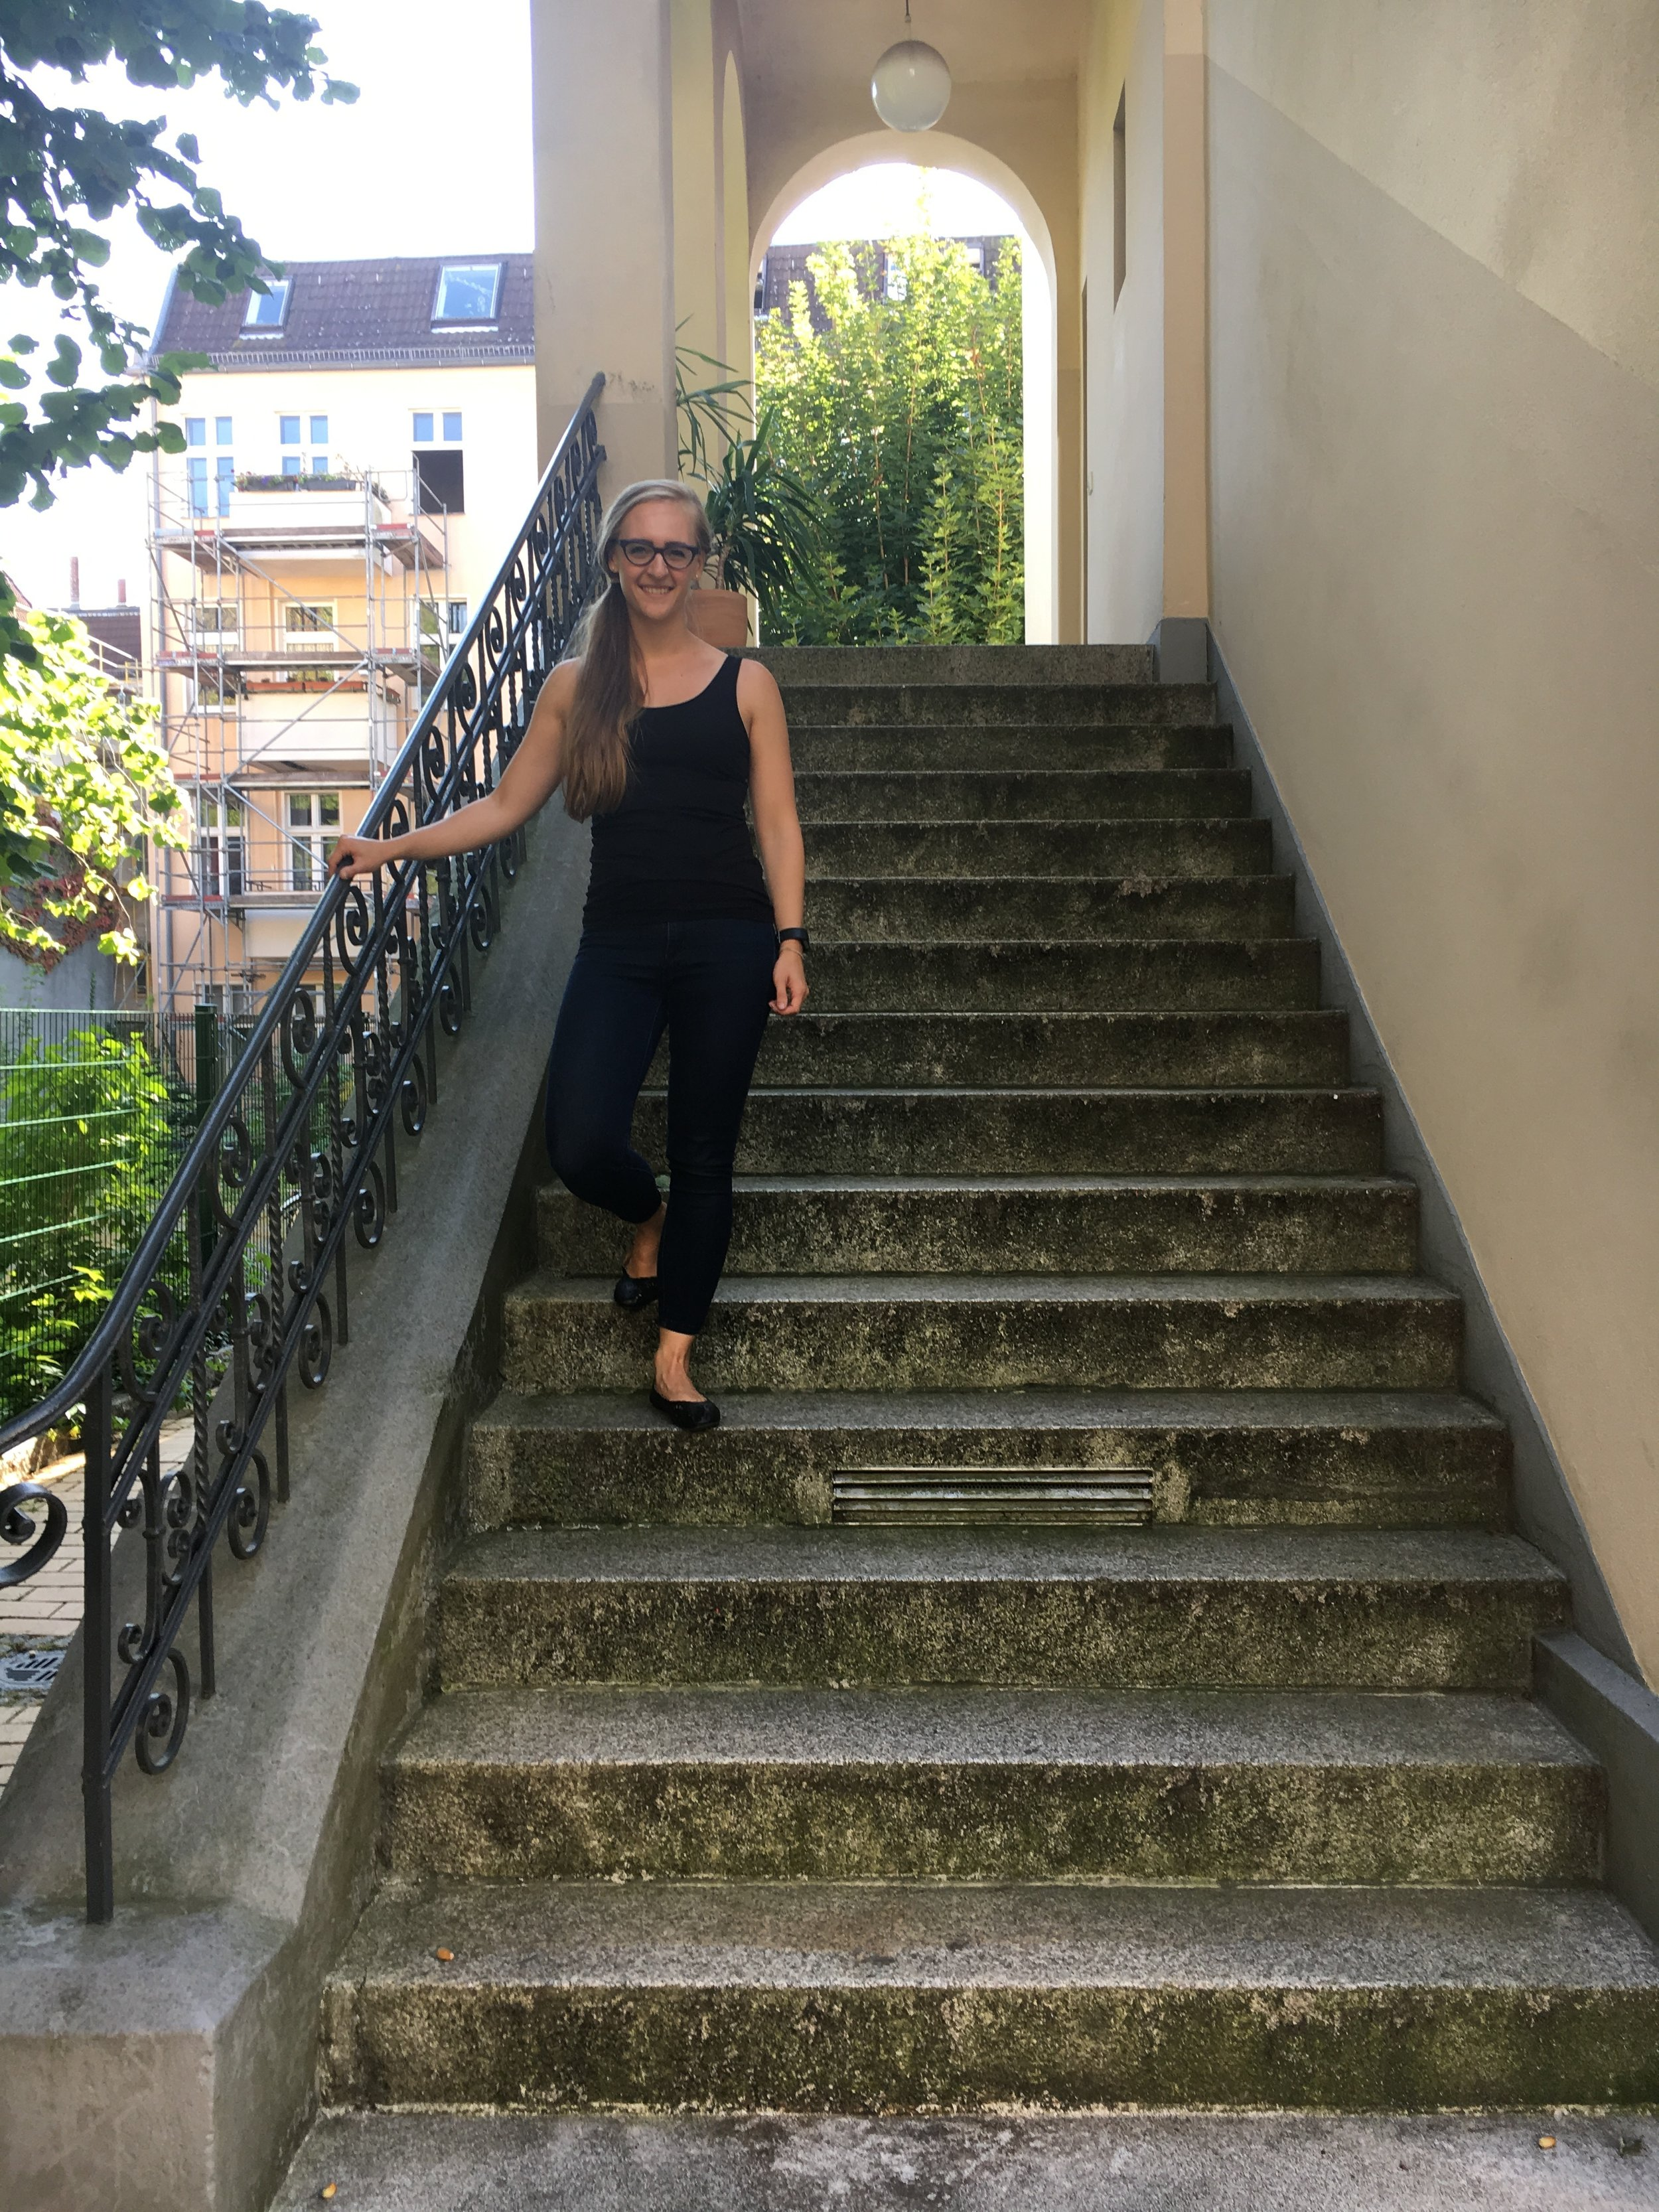 Standing on the steps that lead up to Uropa's old apartment.